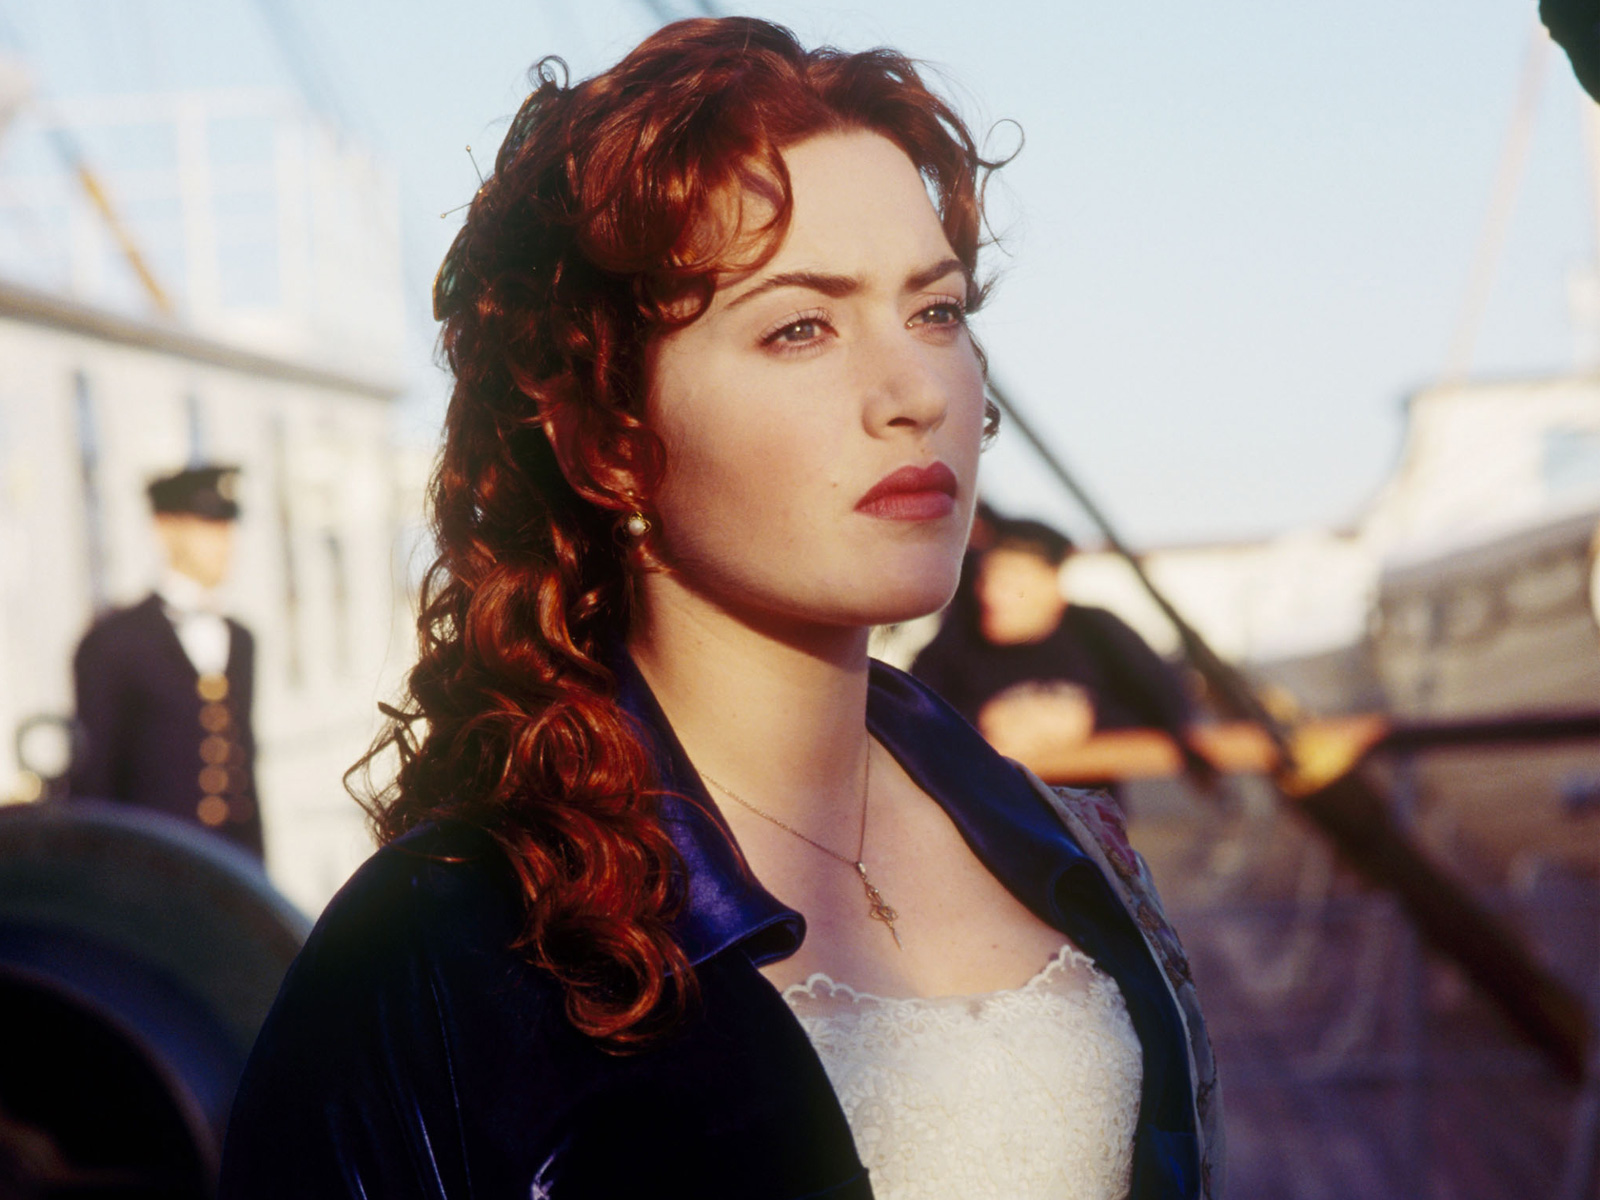 http://4.bp.blogspot.com/-_Rb0ZxWy6XQ/T3g6bB7DP7I/AAAAAAAAAU0/1ICtf8SdZAI/s1600/The-best-top-hd-desktop-kate-winslet-wallpaper-kate-winslet-wallpapers-titanic-wallpaper-23.jpg